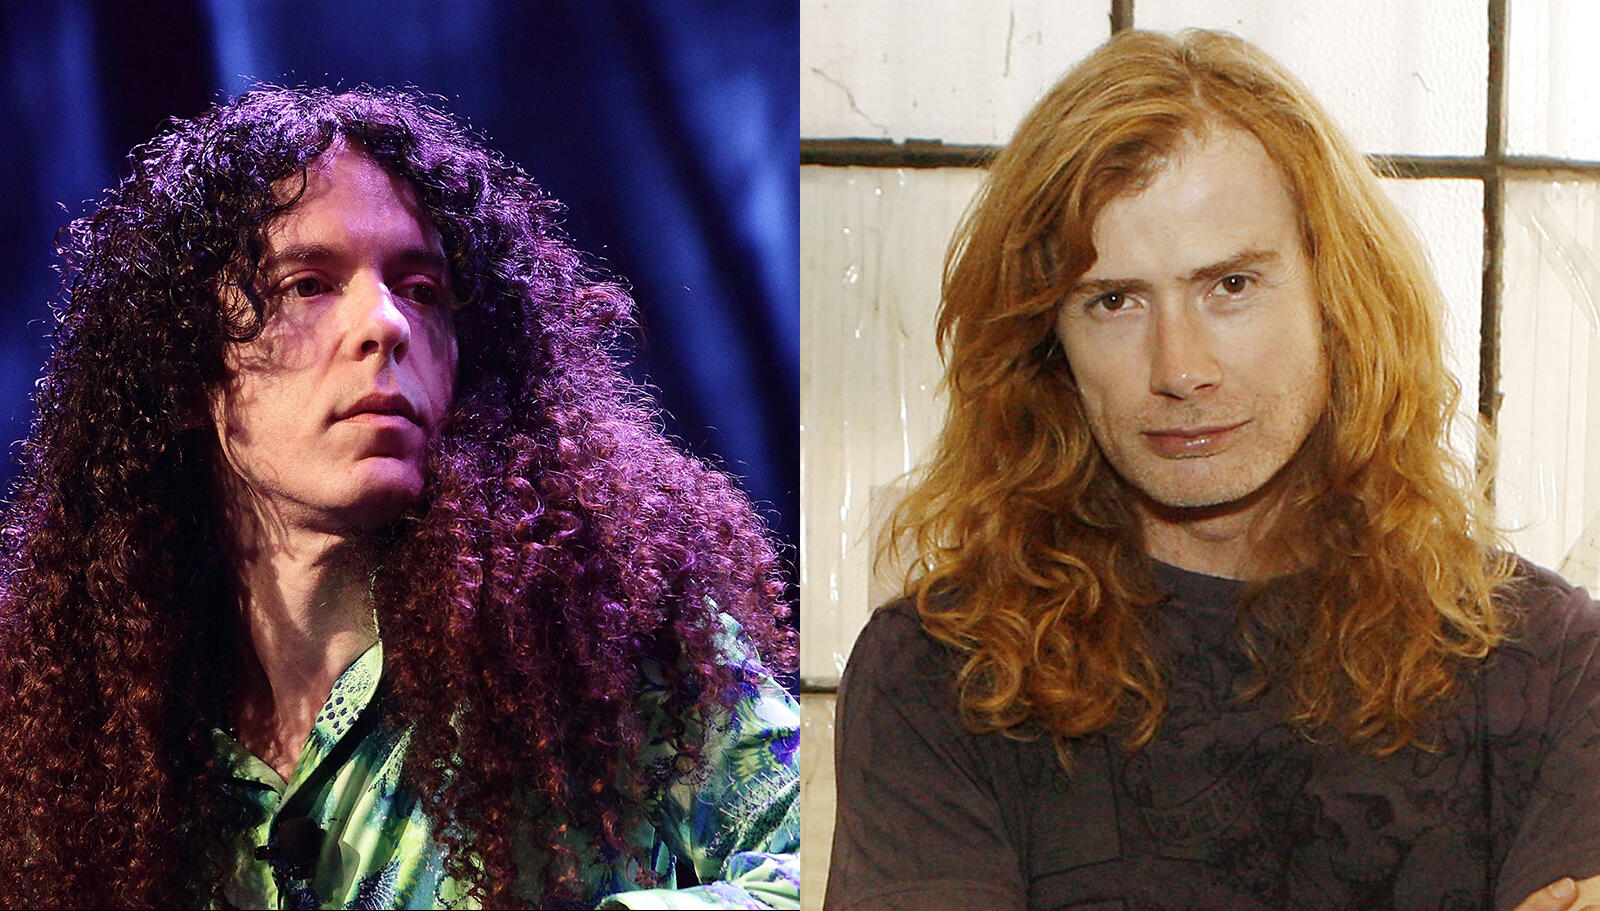 Archival Video Shows Marty Friedman's First Megadeth Rehearsal